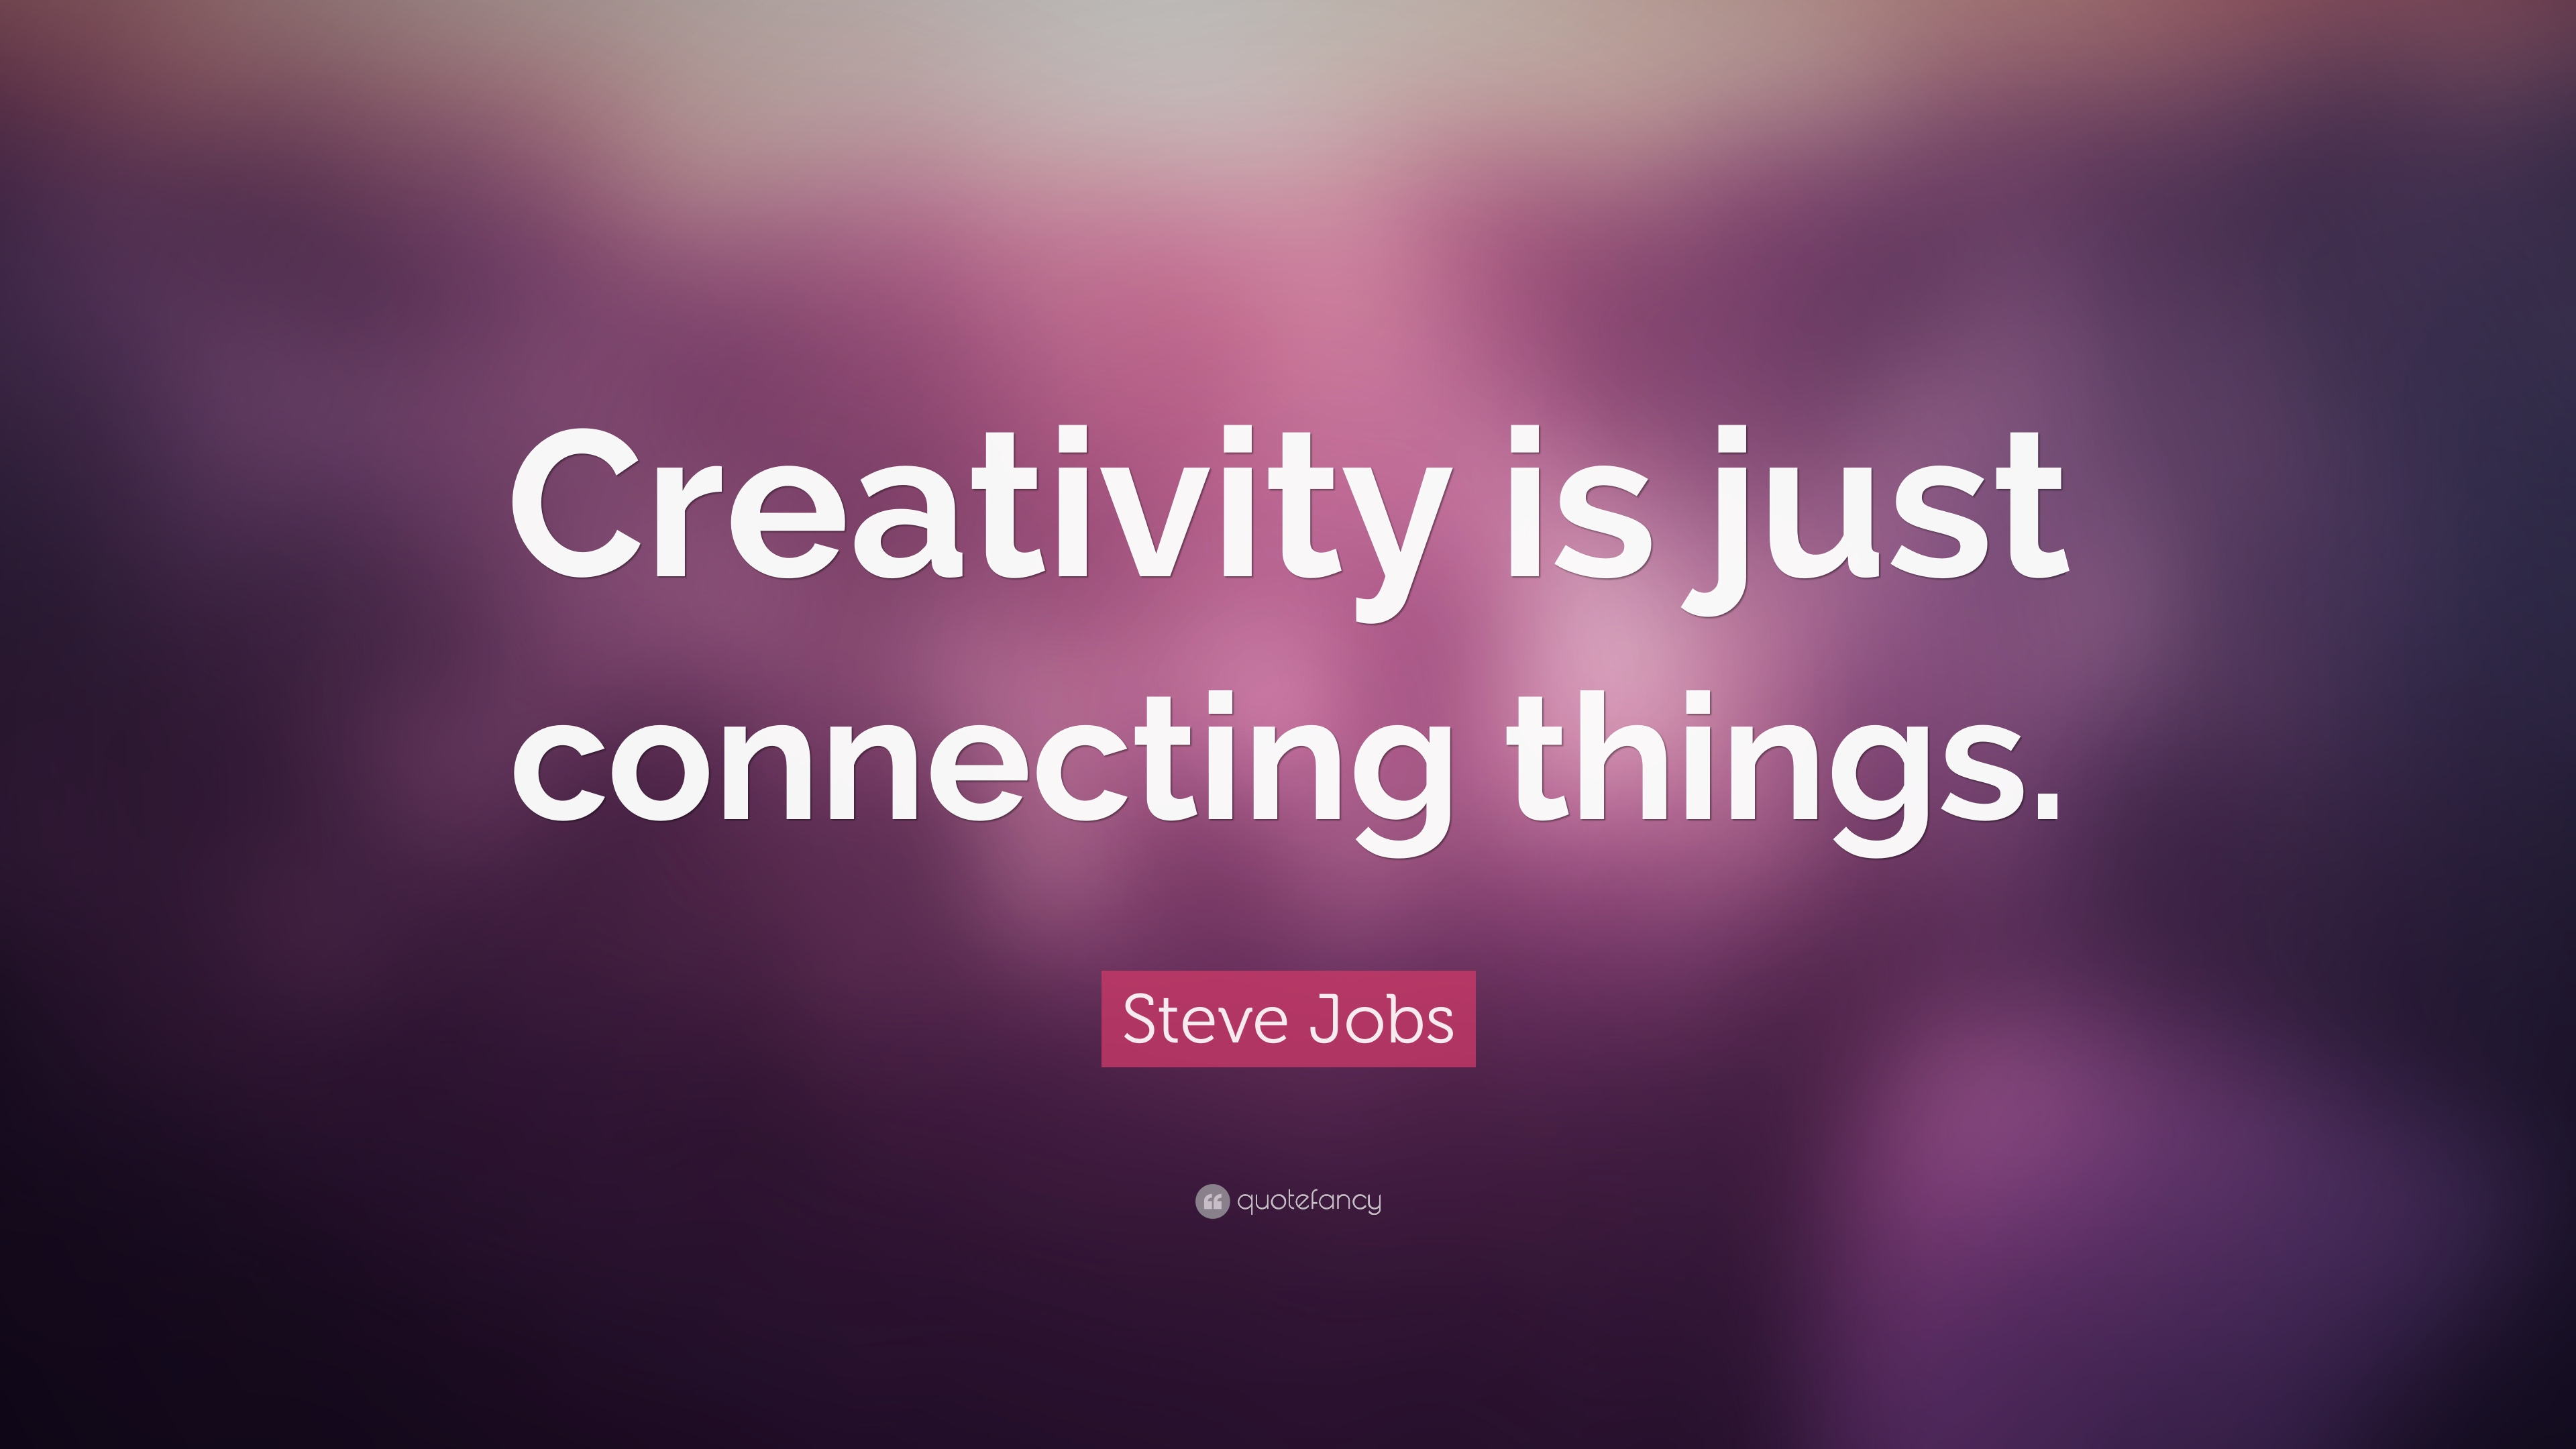 Is Creativity Steve Jobs Connecting Things